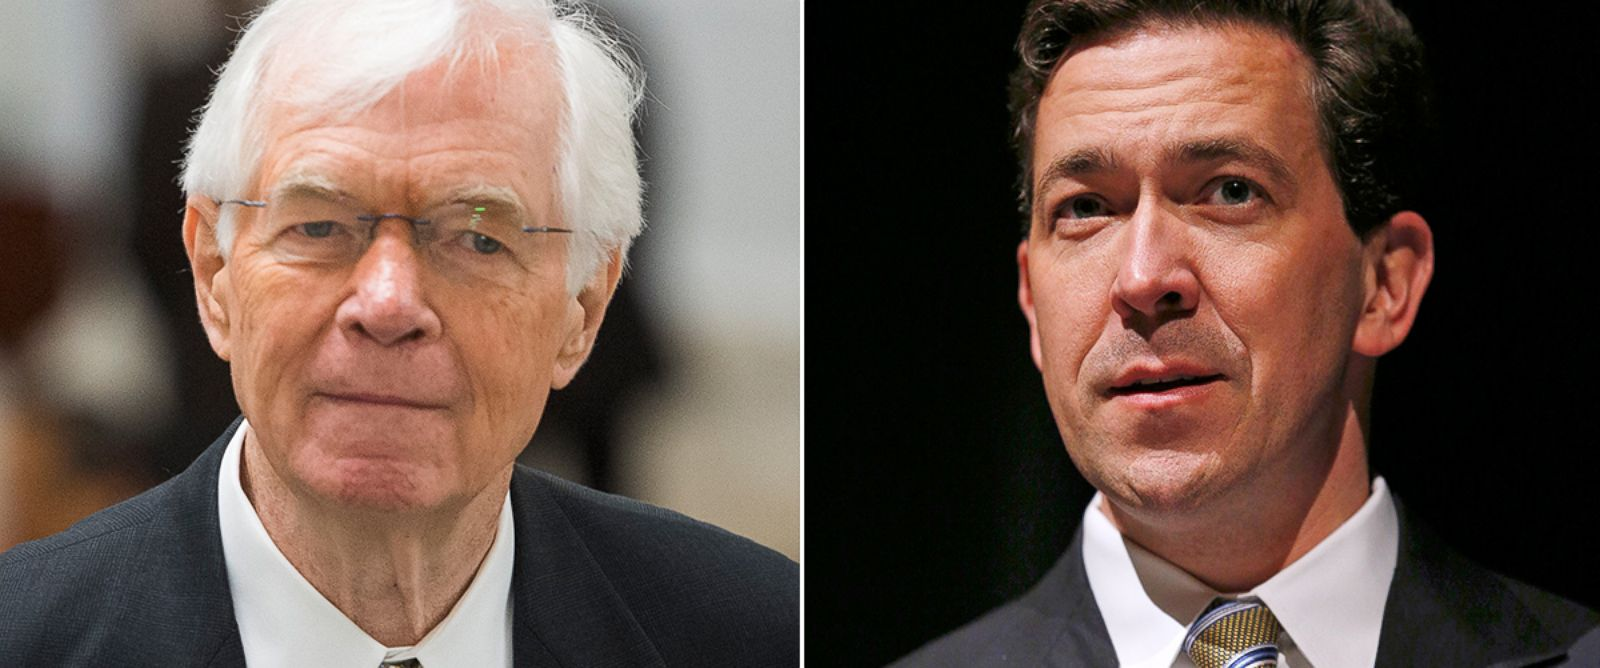 PHOTO: Senator Thad Cochran approaches the Senate floor on May 13, 2014 and Miss. Senator Chris McDaniel speaks to a town hall meeting in Ocean Springs, Miss. on March 18, 2014.